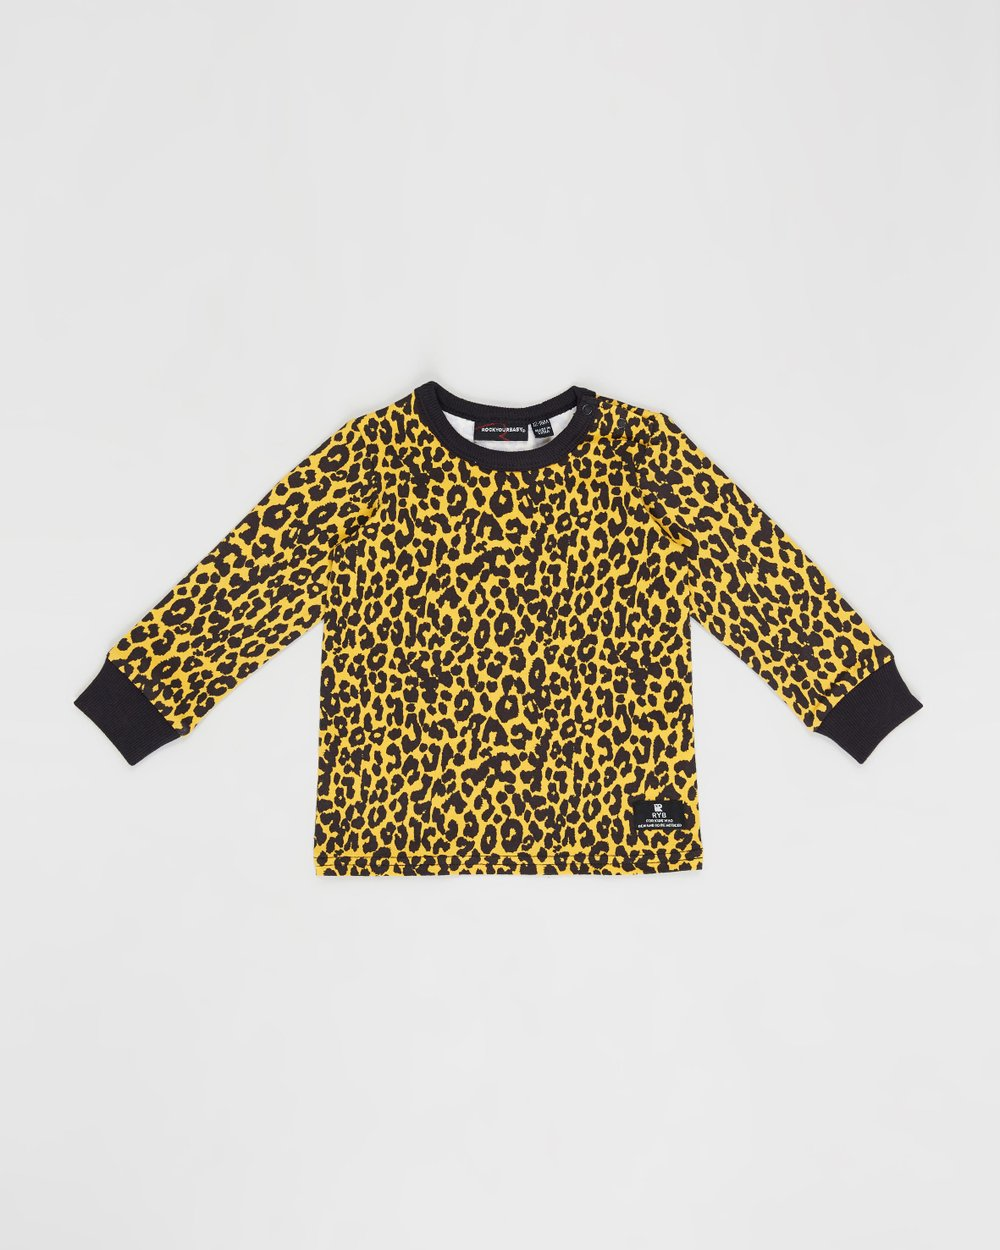 6196c790d4d3 Leopard Skin LS Tee - Babies by Rock Your Baby Online   THE ICONIC    Australia